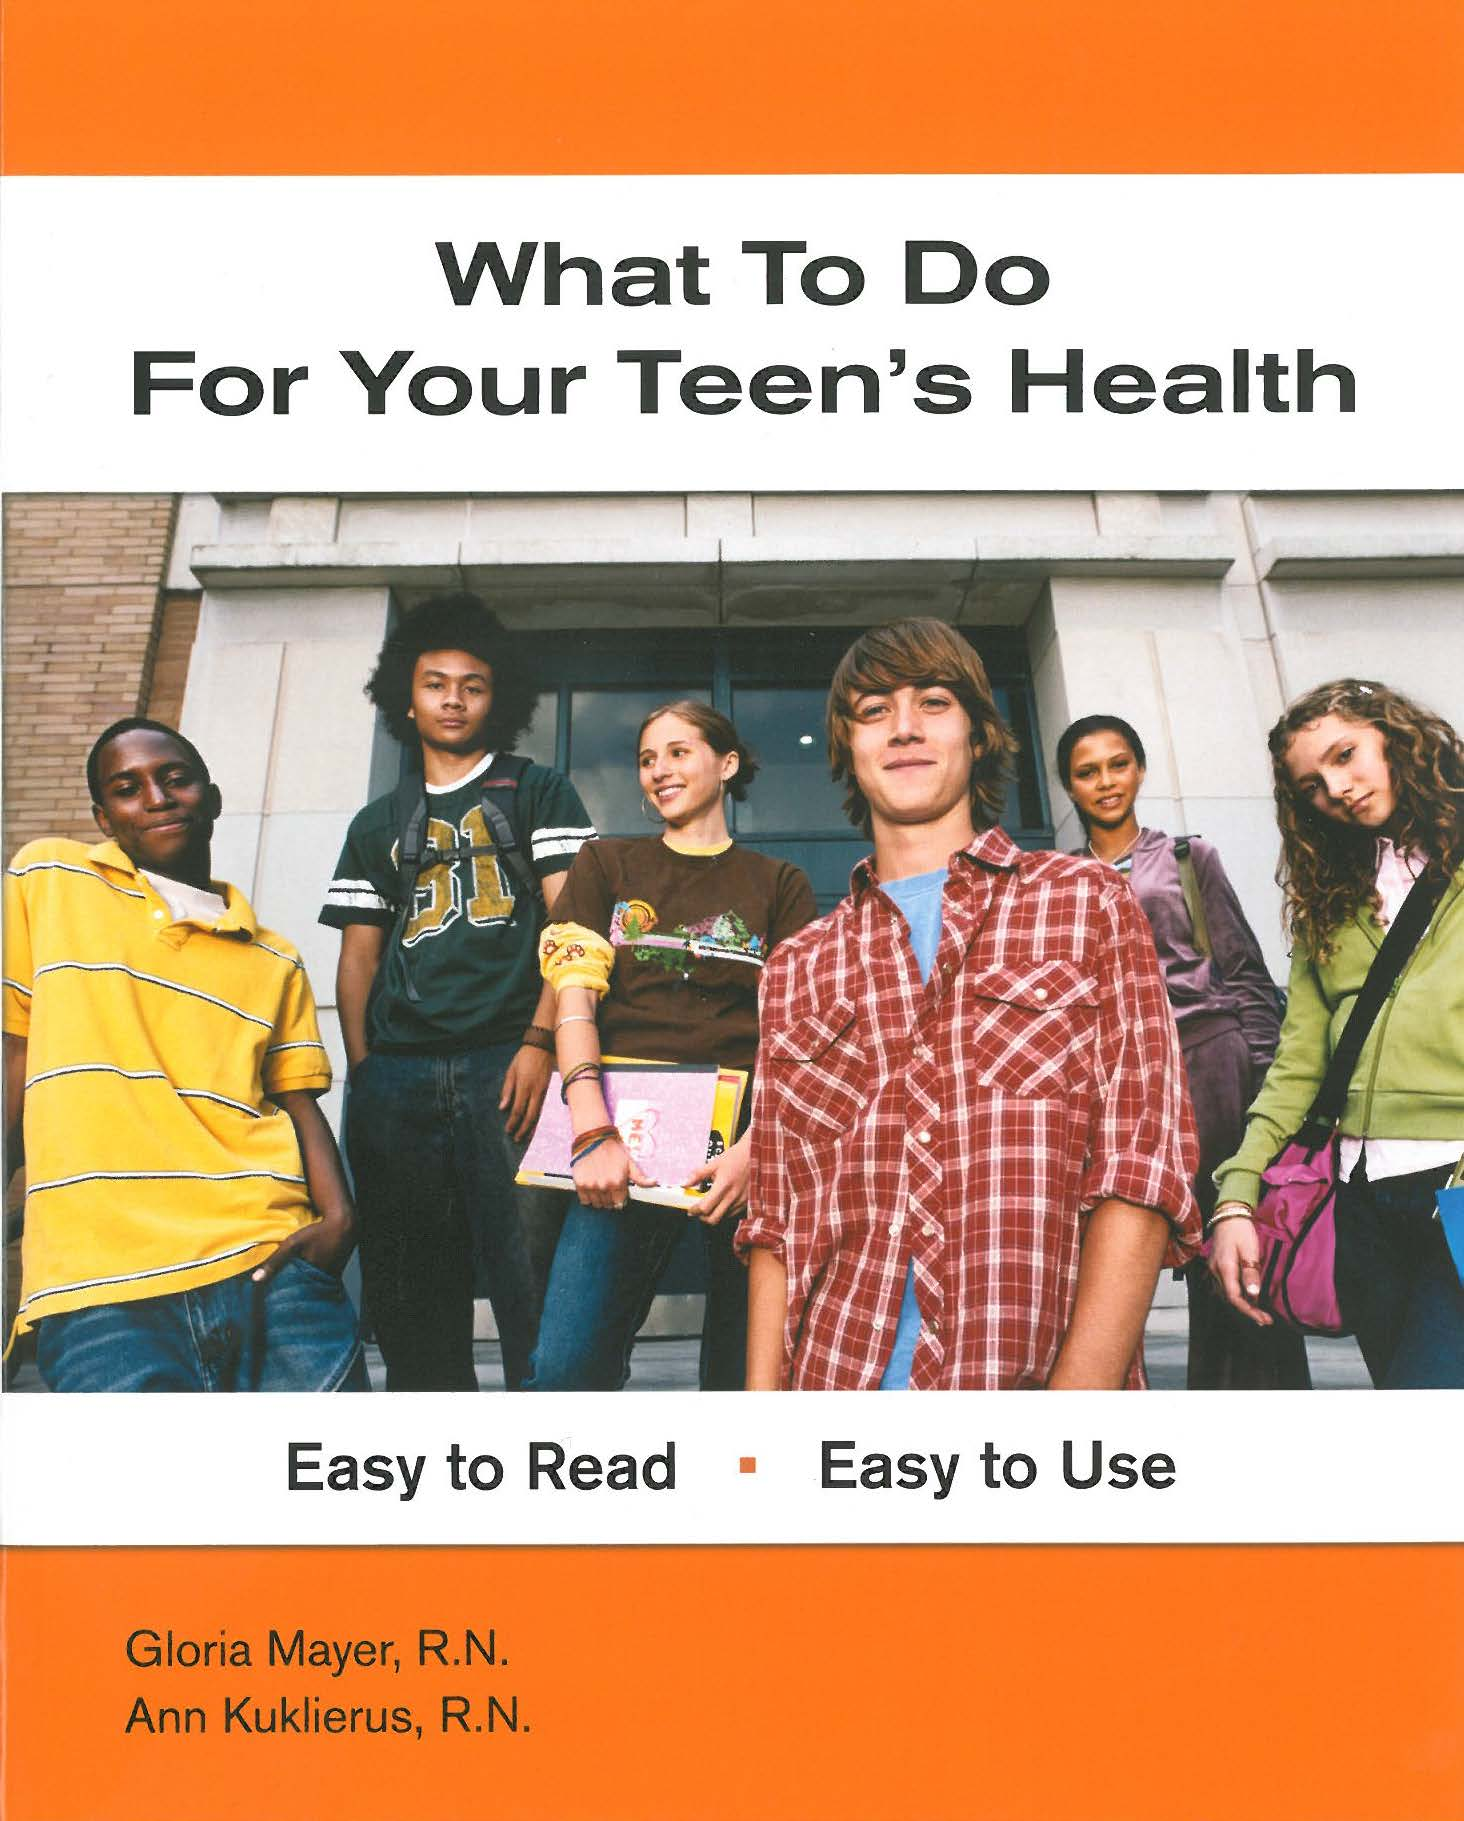 Teen Health: What To Do For Your Teen's Health